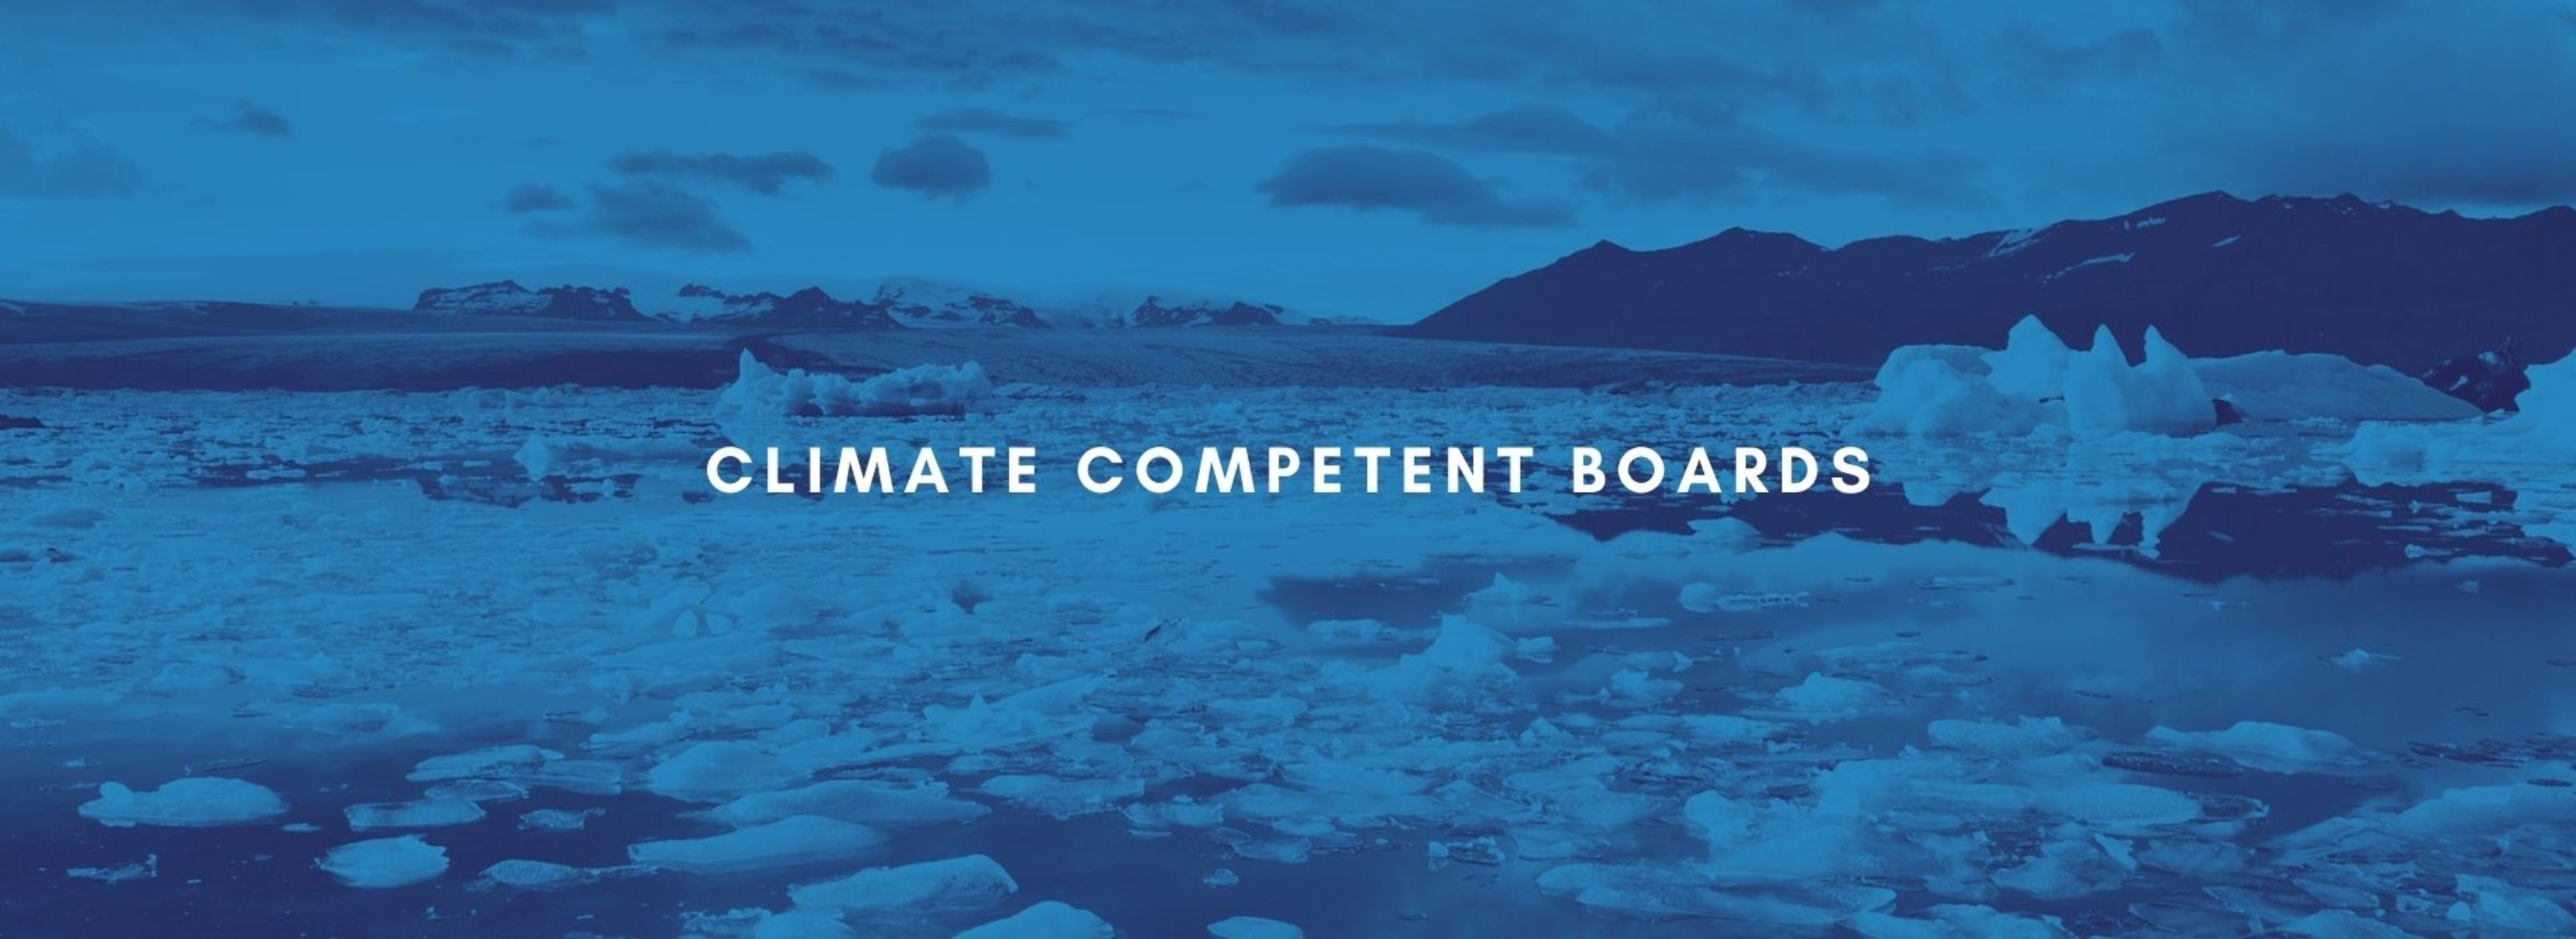 BP | Climate Competent Boards | March 23rd, 2021